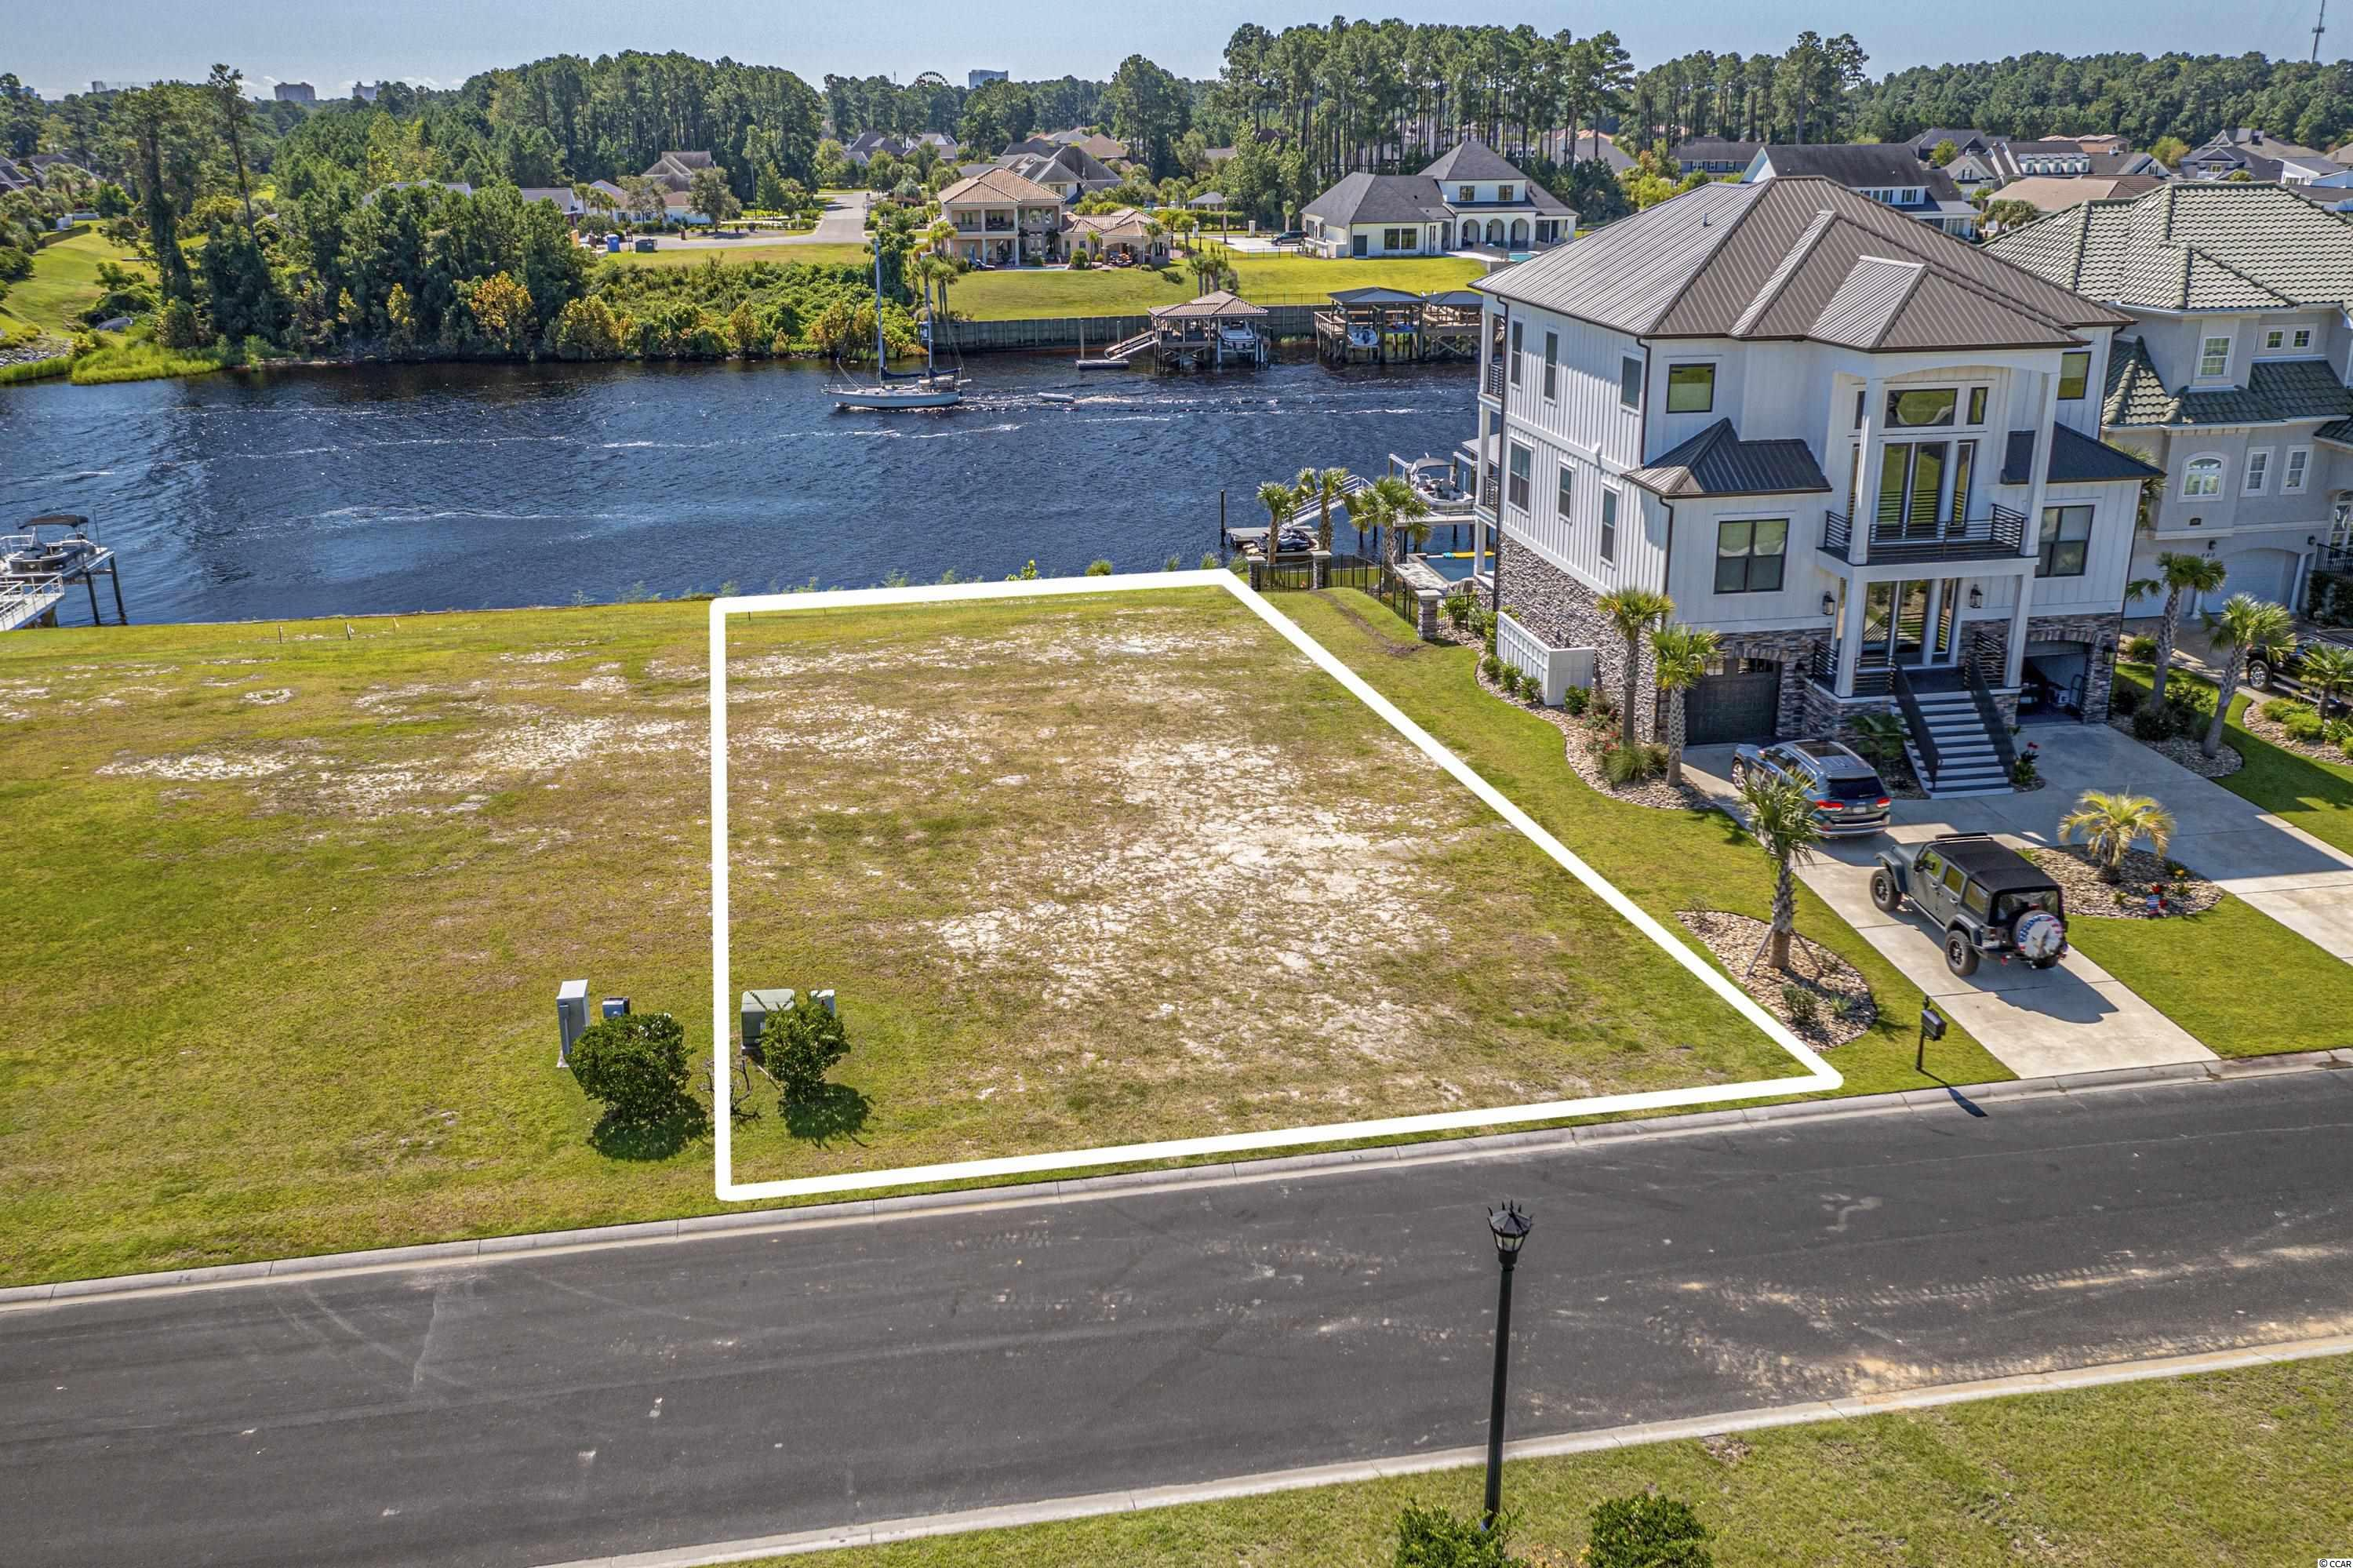 Imagine building your dream home on the Intracoastal Waterway here in exclusive gated community of Carolina Waterway Plantation.This CWP lot boasts 0.28 acres and 60' of waterway frontage. No time-frame to build and choose your own builder. Carolina Waterway Plantation has resort style amenities including furnished clubhouse with kitchen and banquet room, outside grill, pool, playground, gazebo, tennis court, walking trails, boat ramp and storage boats and RV's. Carolina Forest area offers award-winning schools, grocery stores, medical facilities, recreational centers, bike parks and conveniently located minutes from Myrtle Beach and all it has to offer. Don't let this amazing opportunity slip away. Contact the listing agent for more information and set up a viewing.